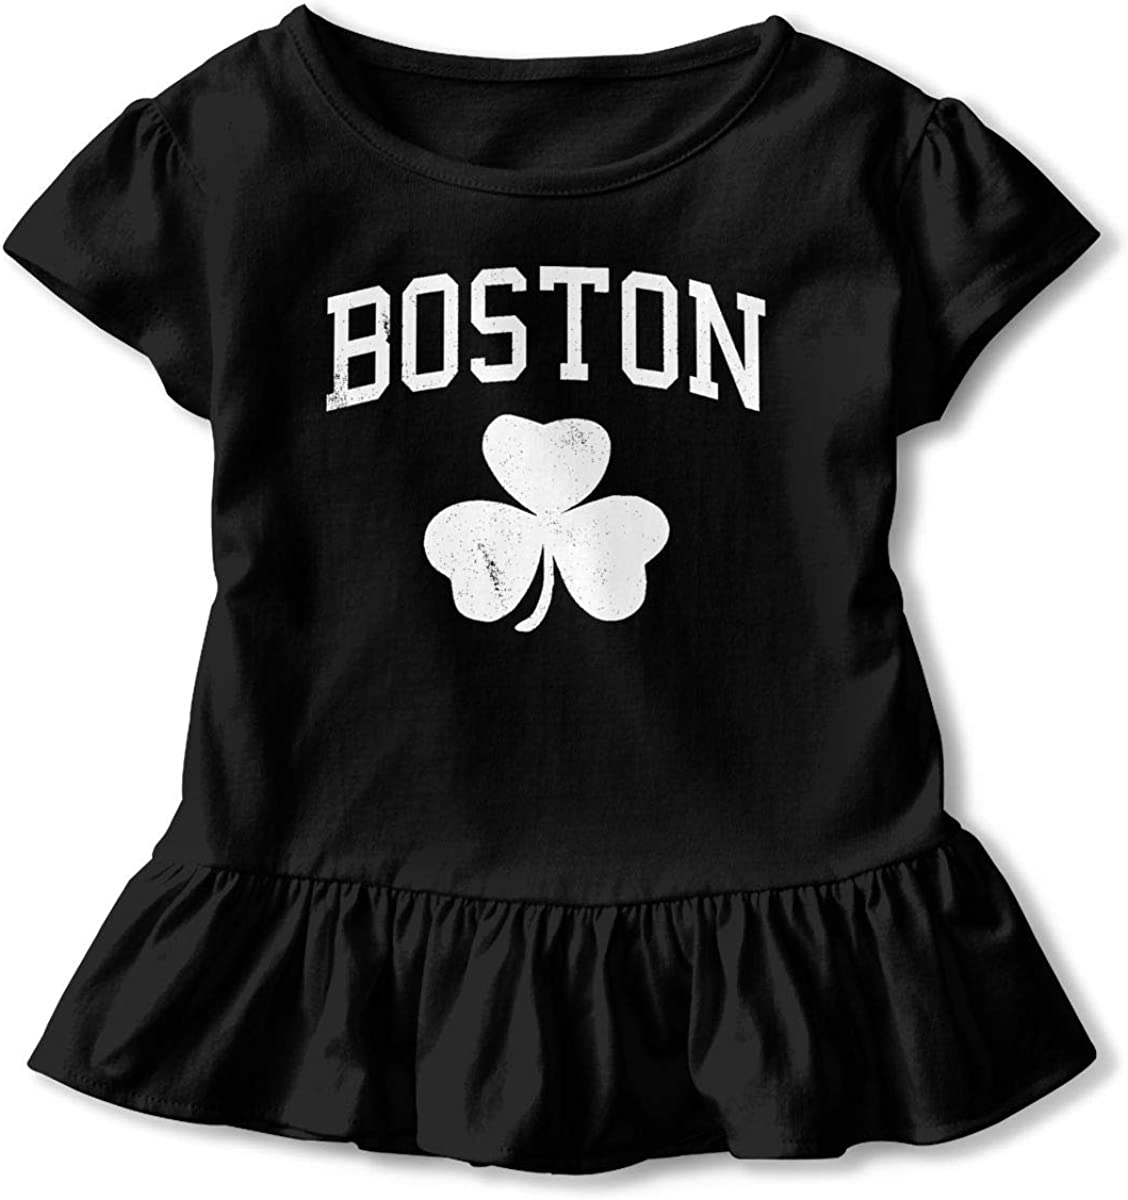 Not Available Boston Shamrock Shirt Baby Girls Ruffles Cotton Tee Shirts for 2-6 Years Old Baby